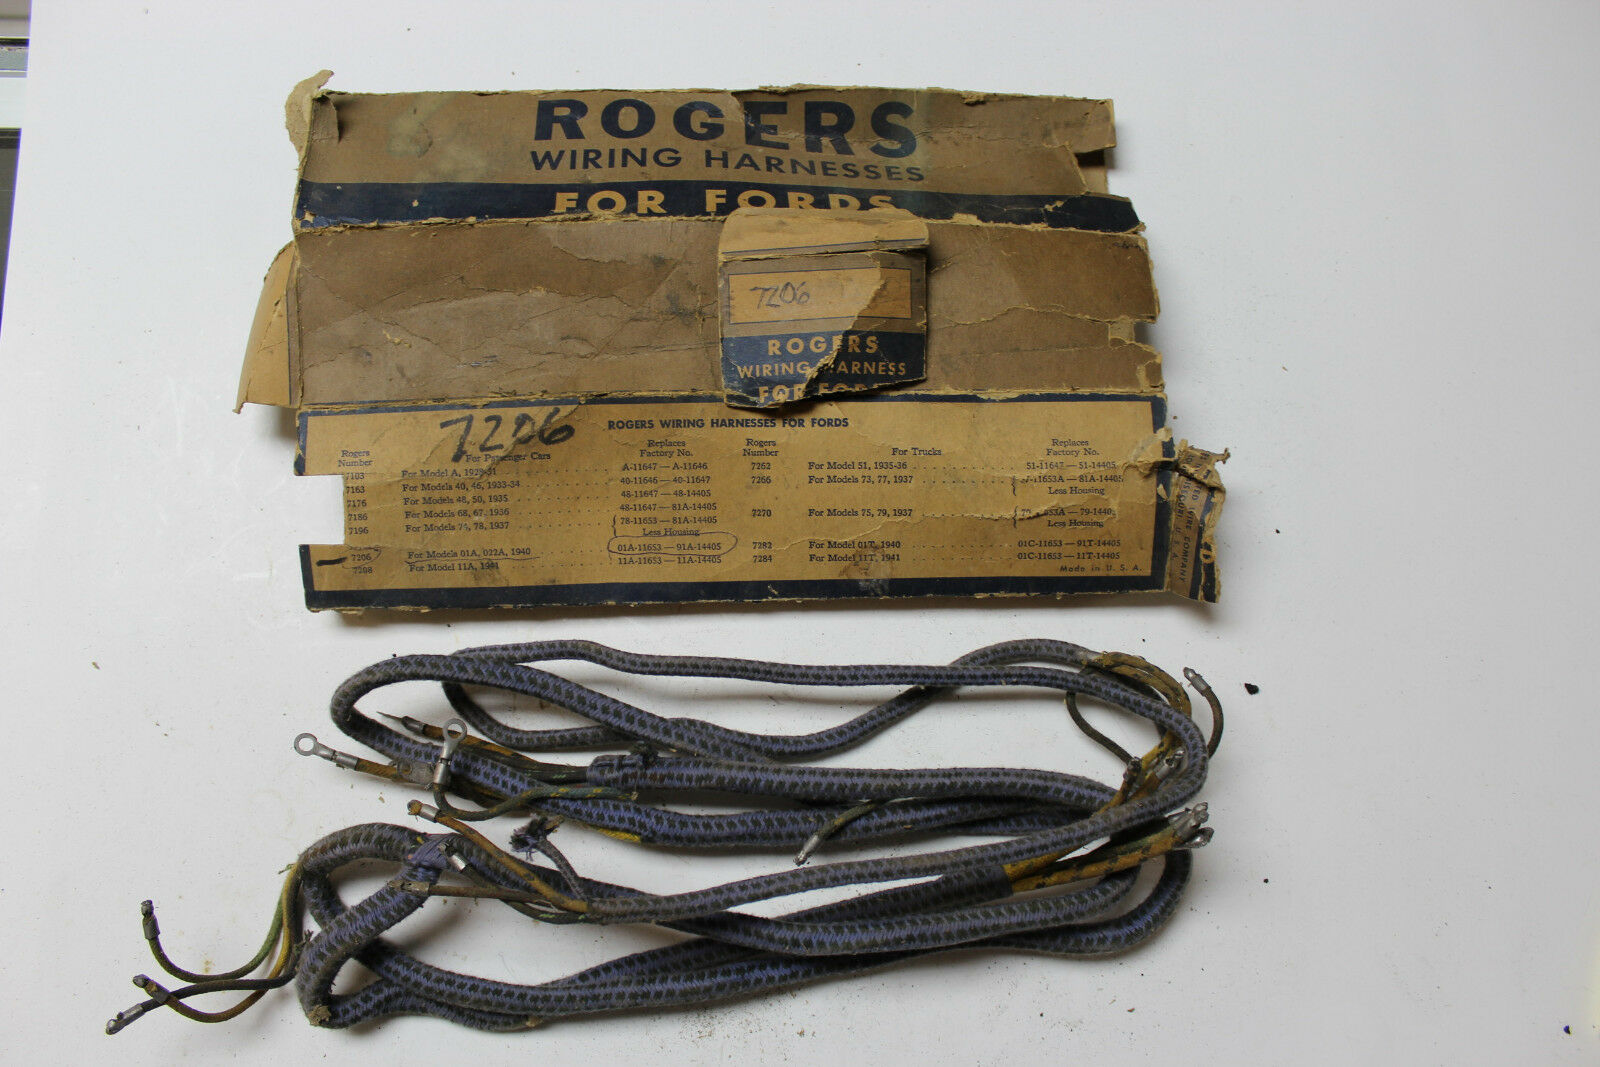 Nos Vintage Cloth Rogers Wiring Harness For Ford 7206 210 Ebay 1929 Model A Norton Secured Powered By Verisign